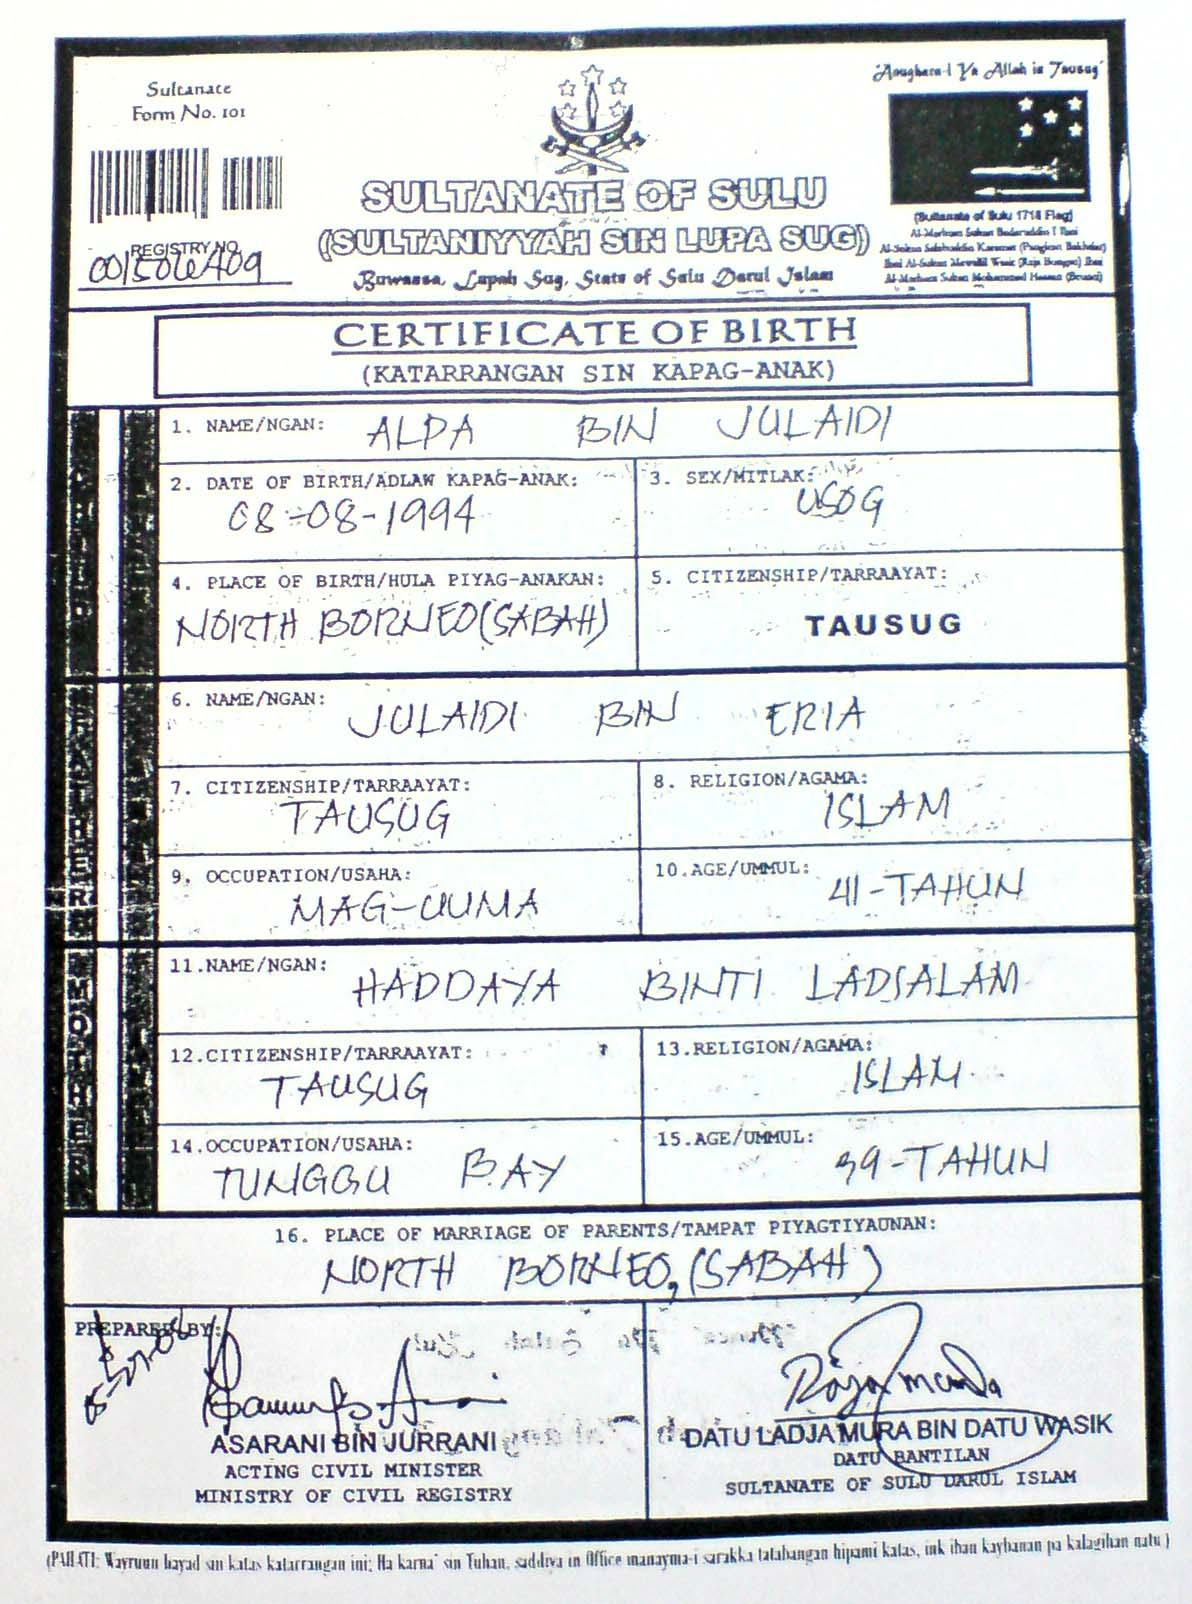 Sultanate of sulu north borneosabah issuing birth certificates sultante sulu certificate of birth aiddatafo Image collections